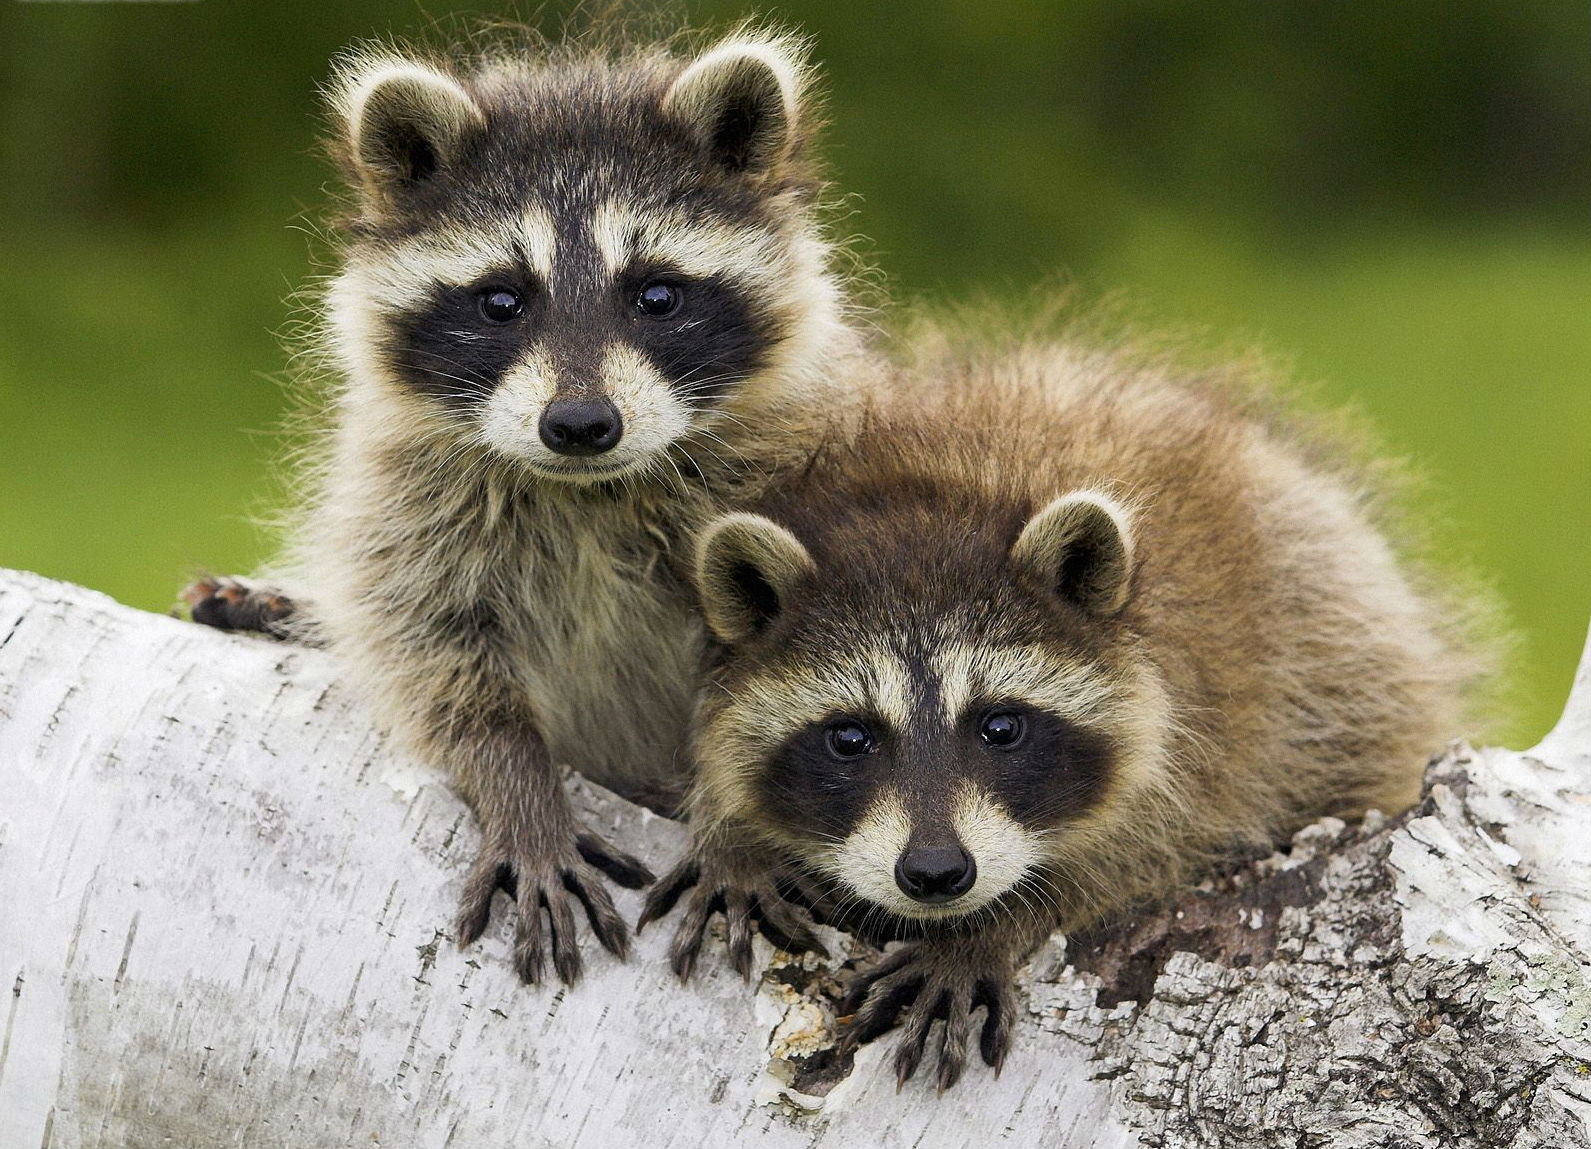 critters raccoons animals racoon dog raccoon animal pets baby pet cat creatures markings kill would